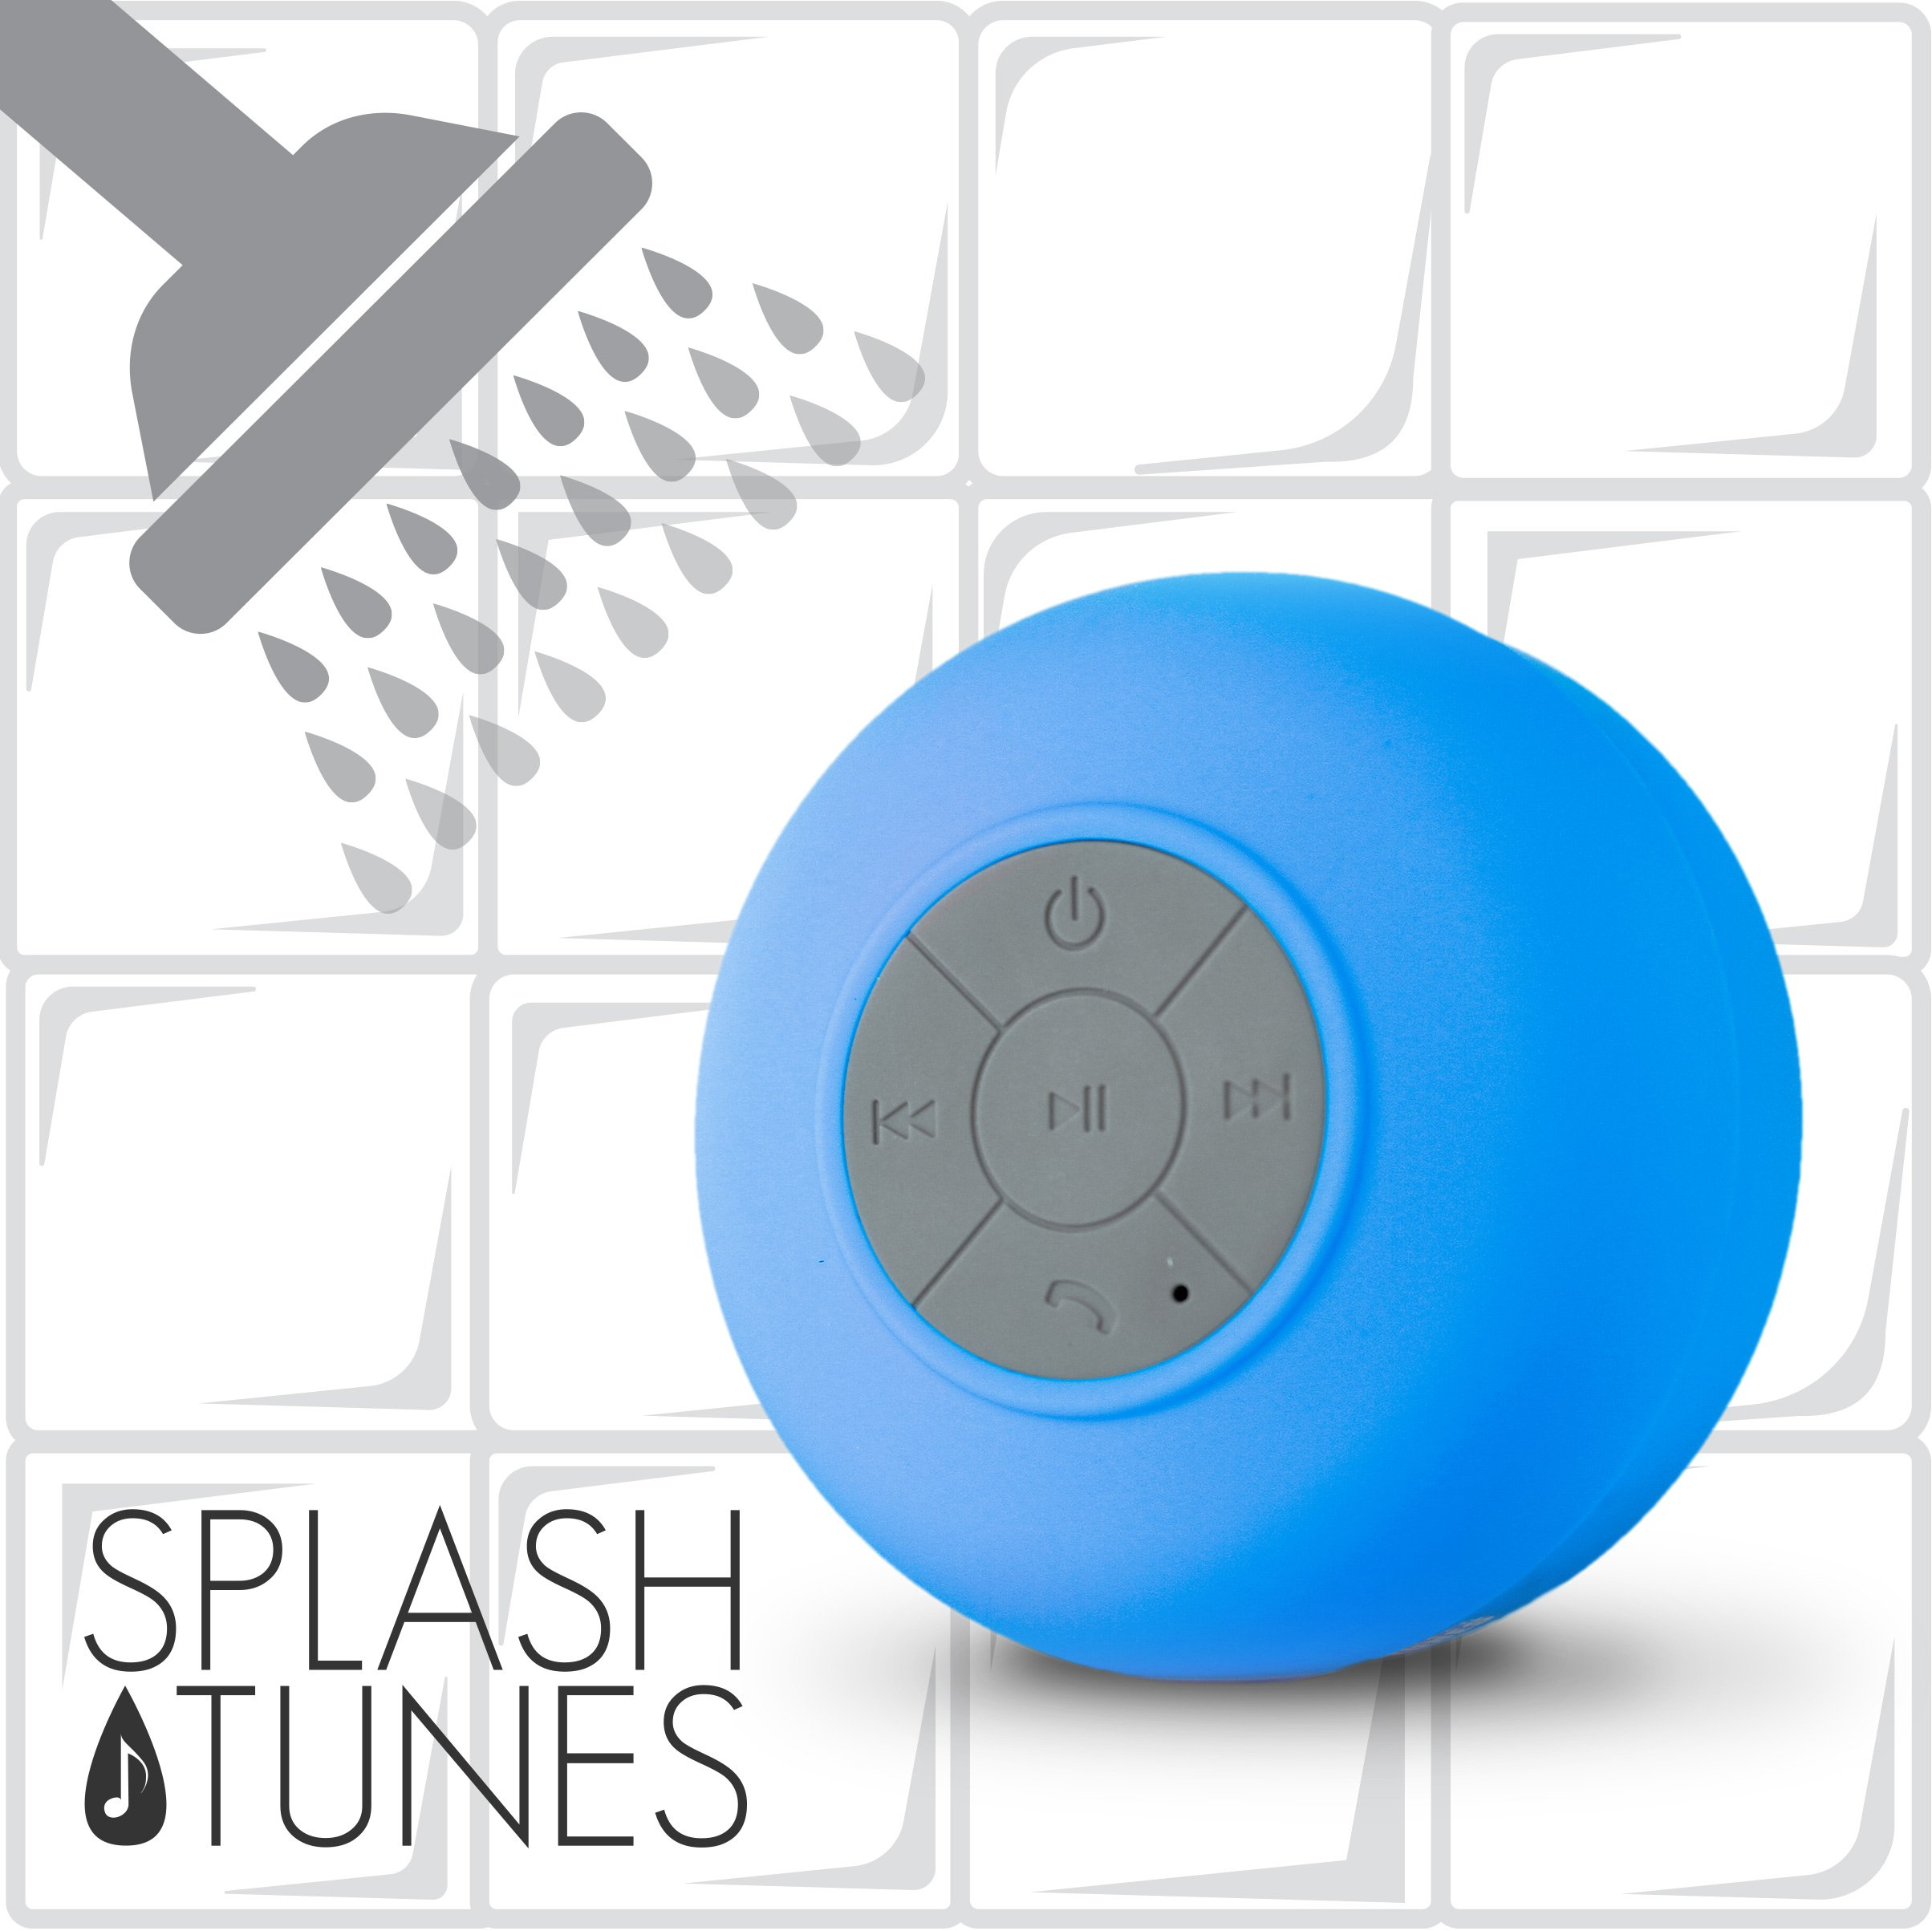 Splash Tunes Shower Speaker - Waterproof Bluetooth Hands-Free Shower Speaker with Built-In Mic and Suction Cup - Blue by FRESHeTECH